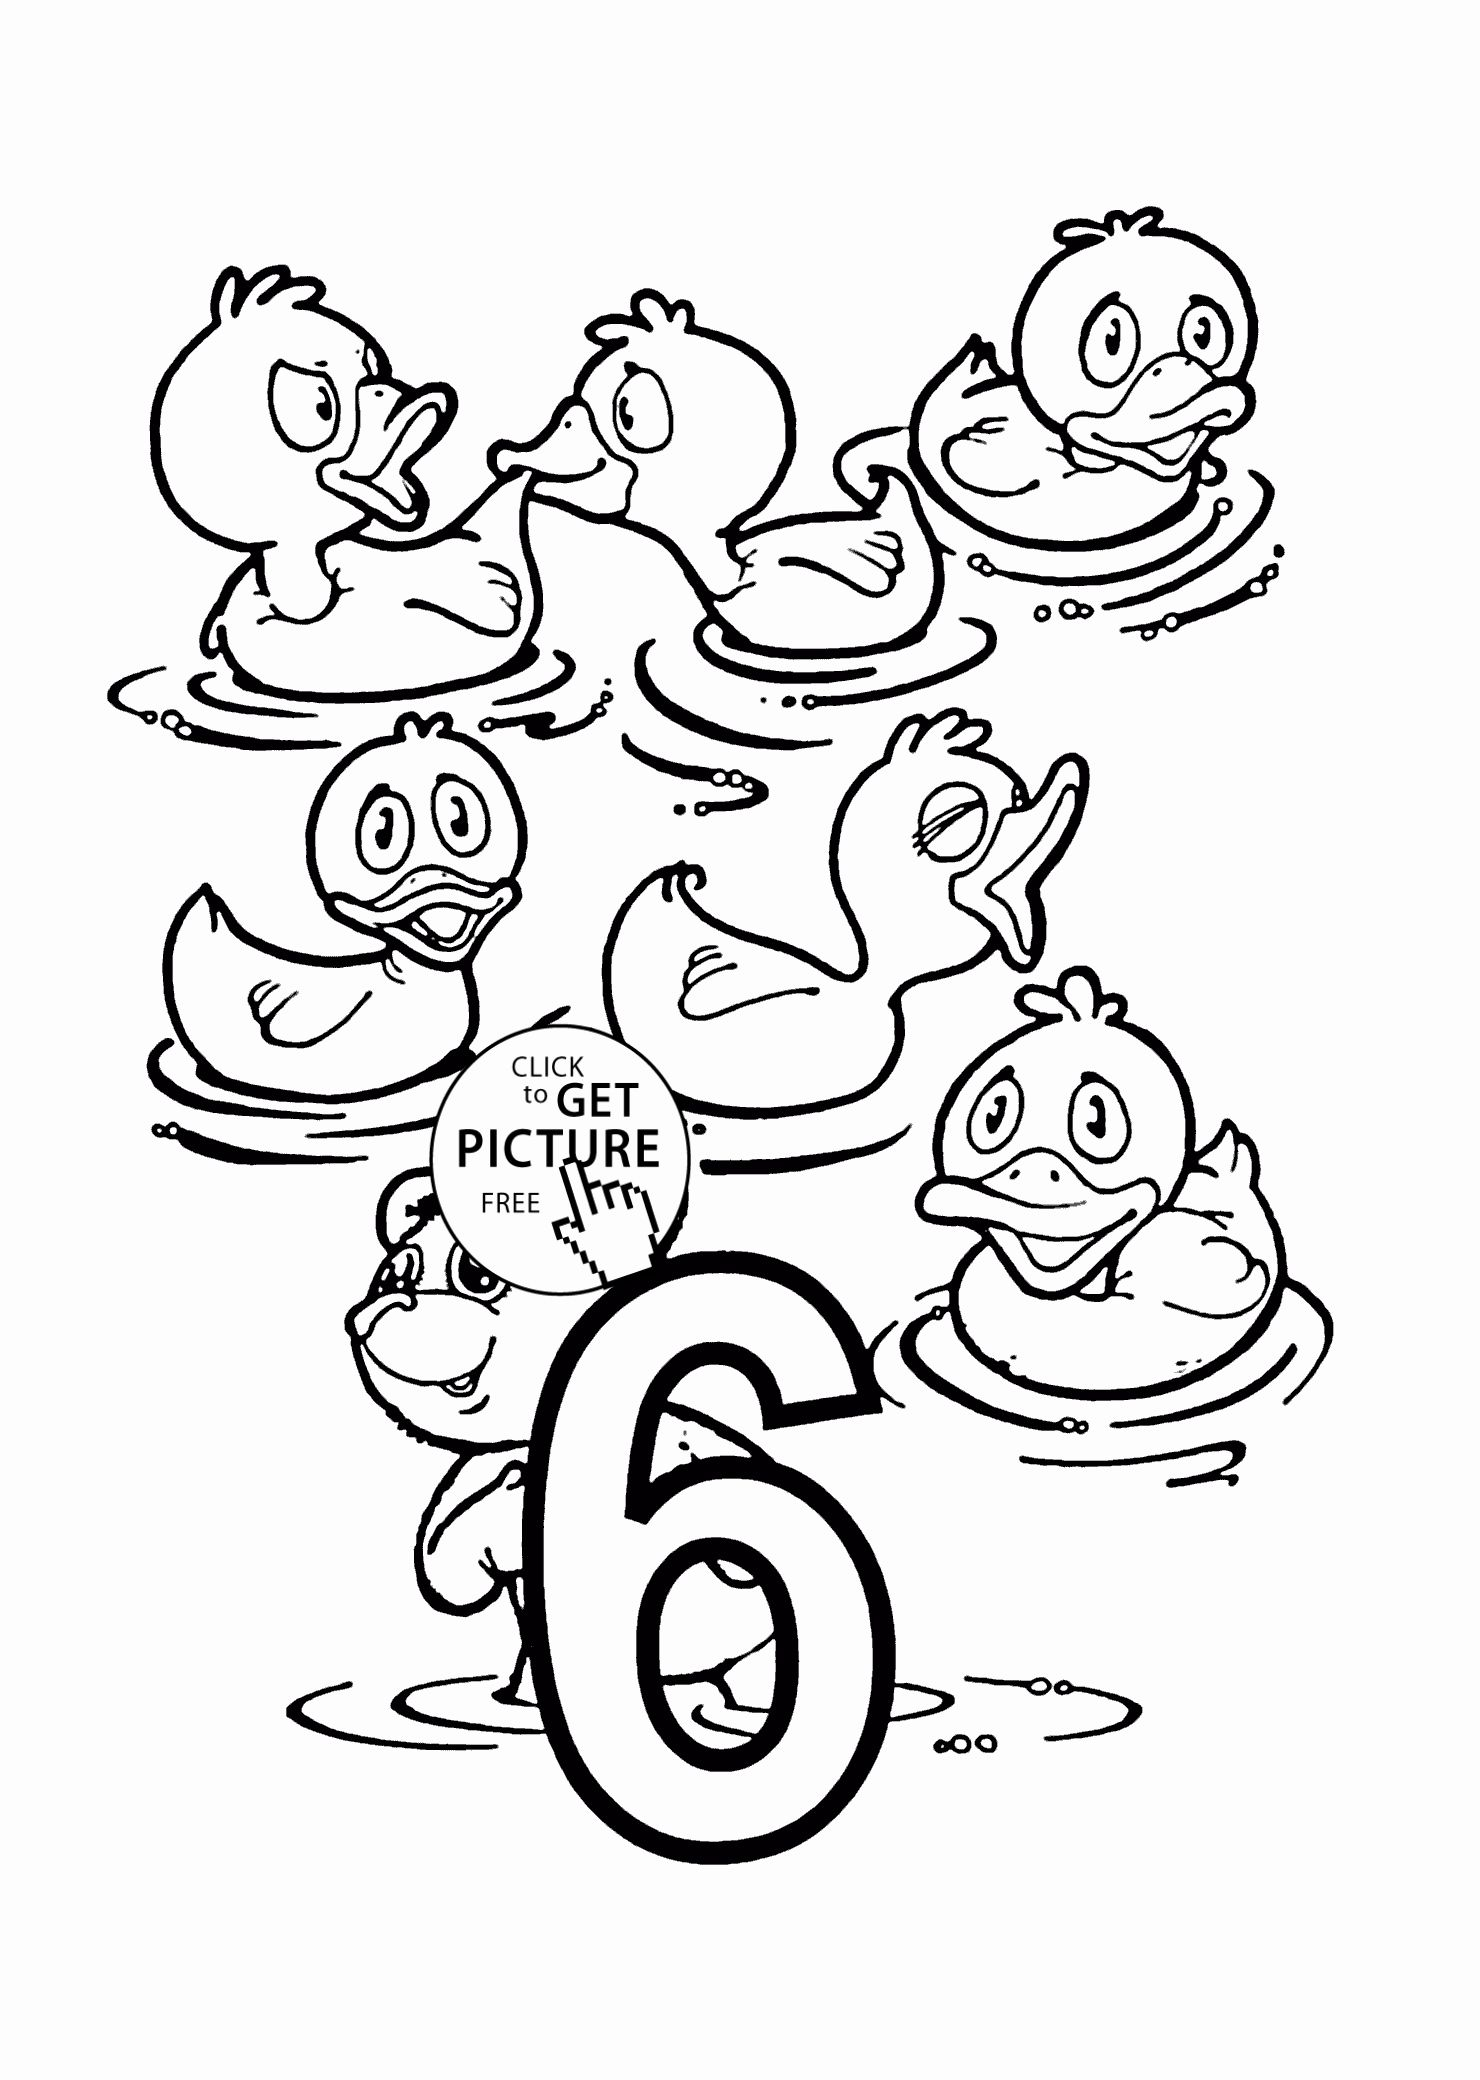 Number Coloring Pages for Kindergarten in 2020 | Coloring ...